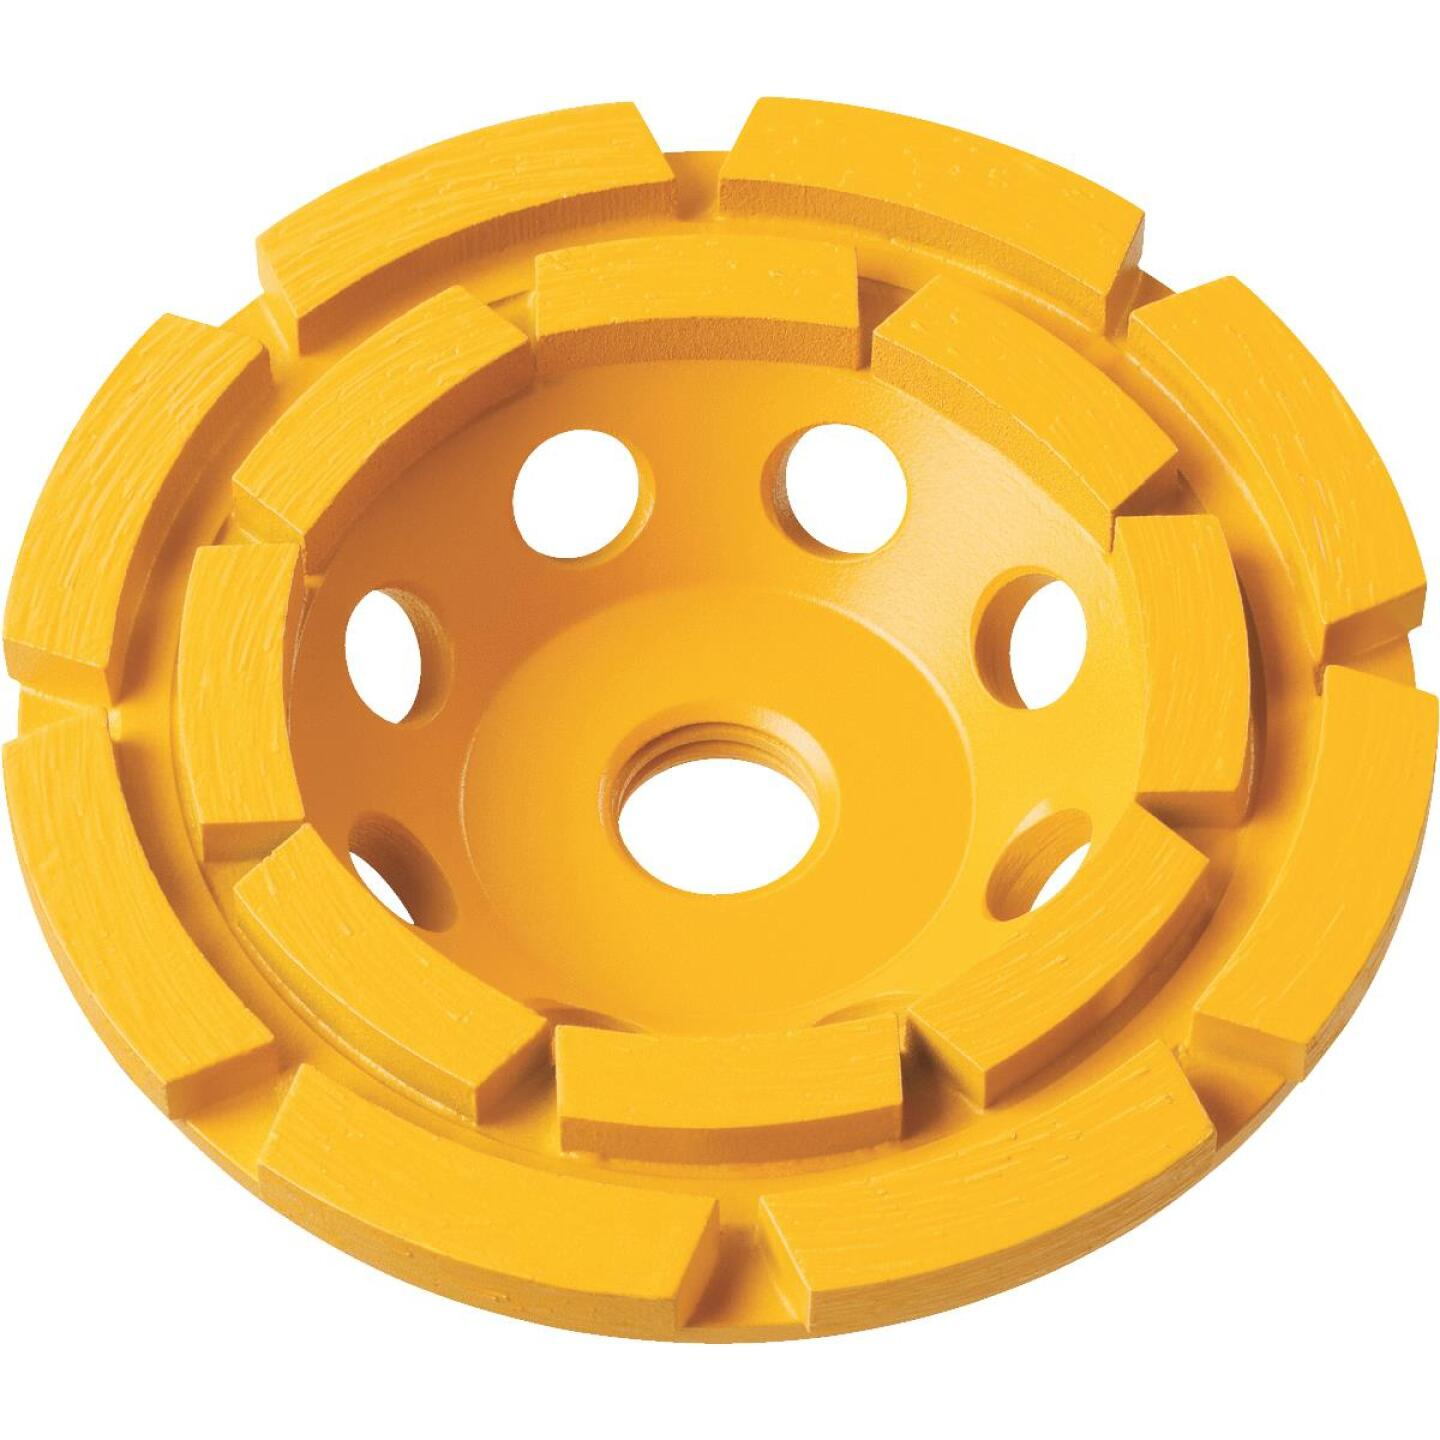 DeWalt 4 In. Segmented Double Row Cup Wheel Image 1